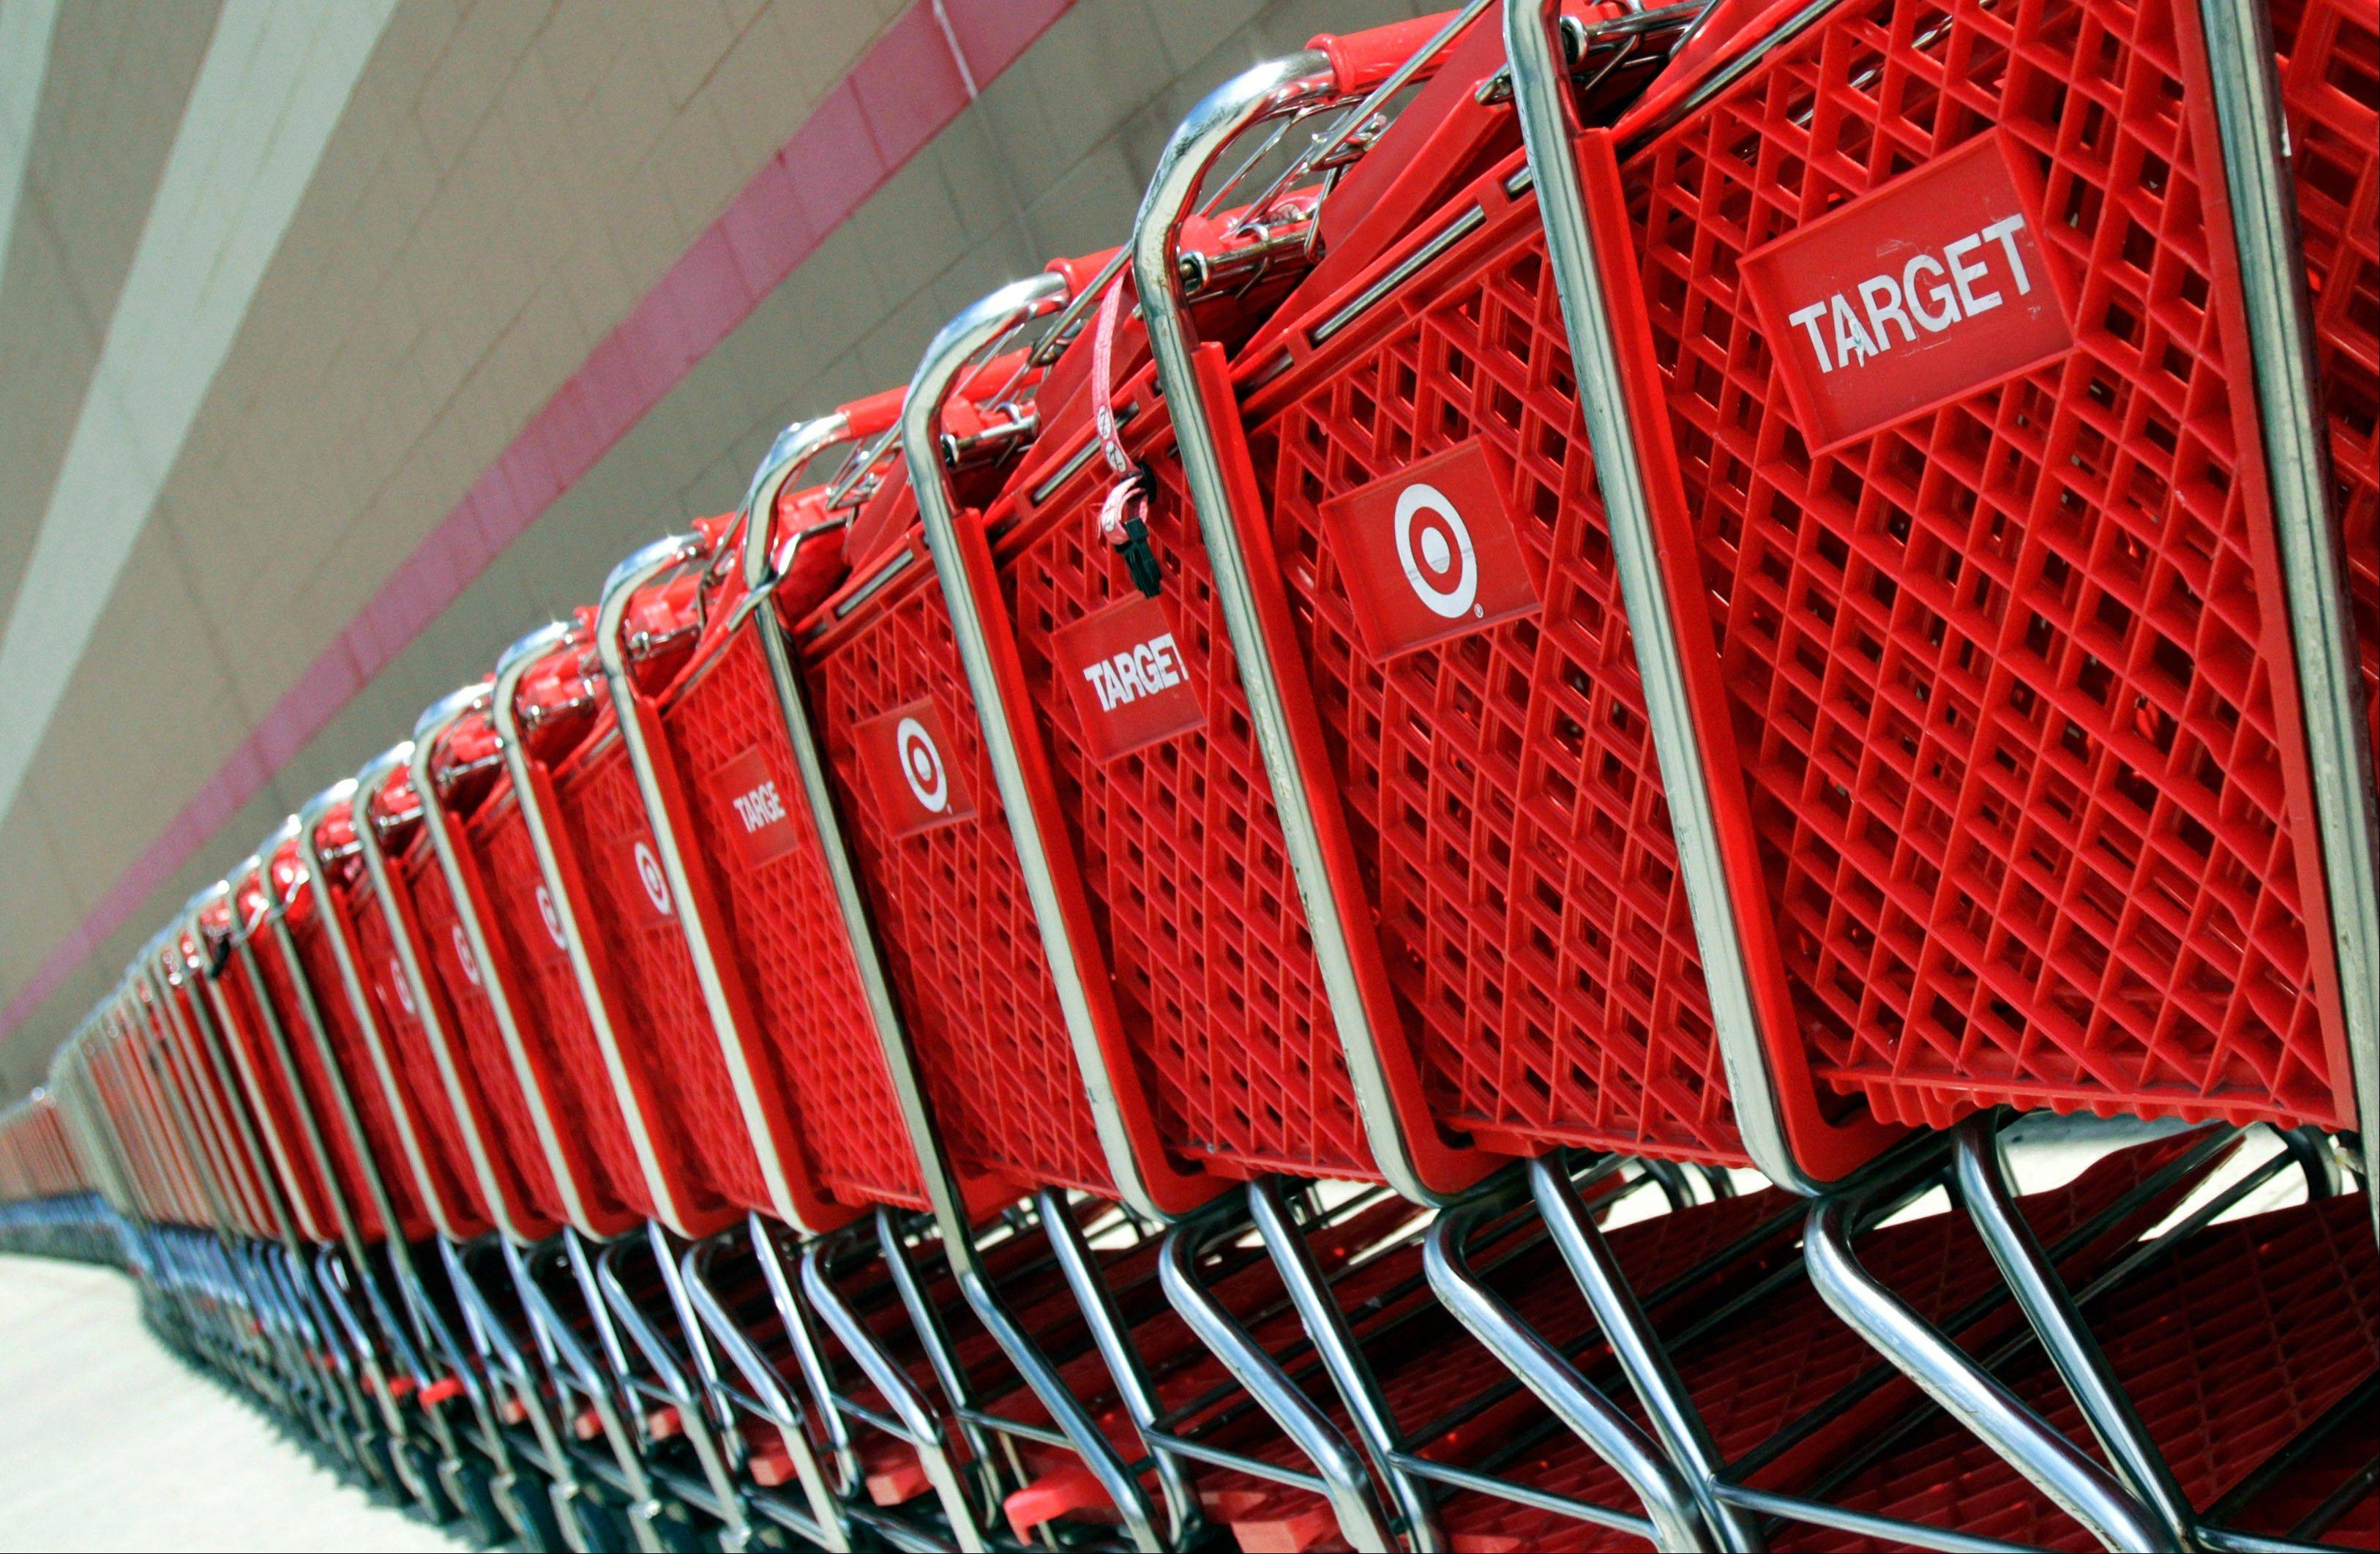 Target is reporting that net income for the second quarter was unchanged, as the retailer gets ready for its upcoming move into Canada. But the retailer saw solid spending in the quarter and in a sign of confidence, the cheap chic discounter raised its earnings outlook. Target posted earnings Wednesday, Aug. 15, 2012 of $704 million, or $1.06 per share in the period ended July 30. That compares with $704 million or $1.03 per share, in the year ago period.